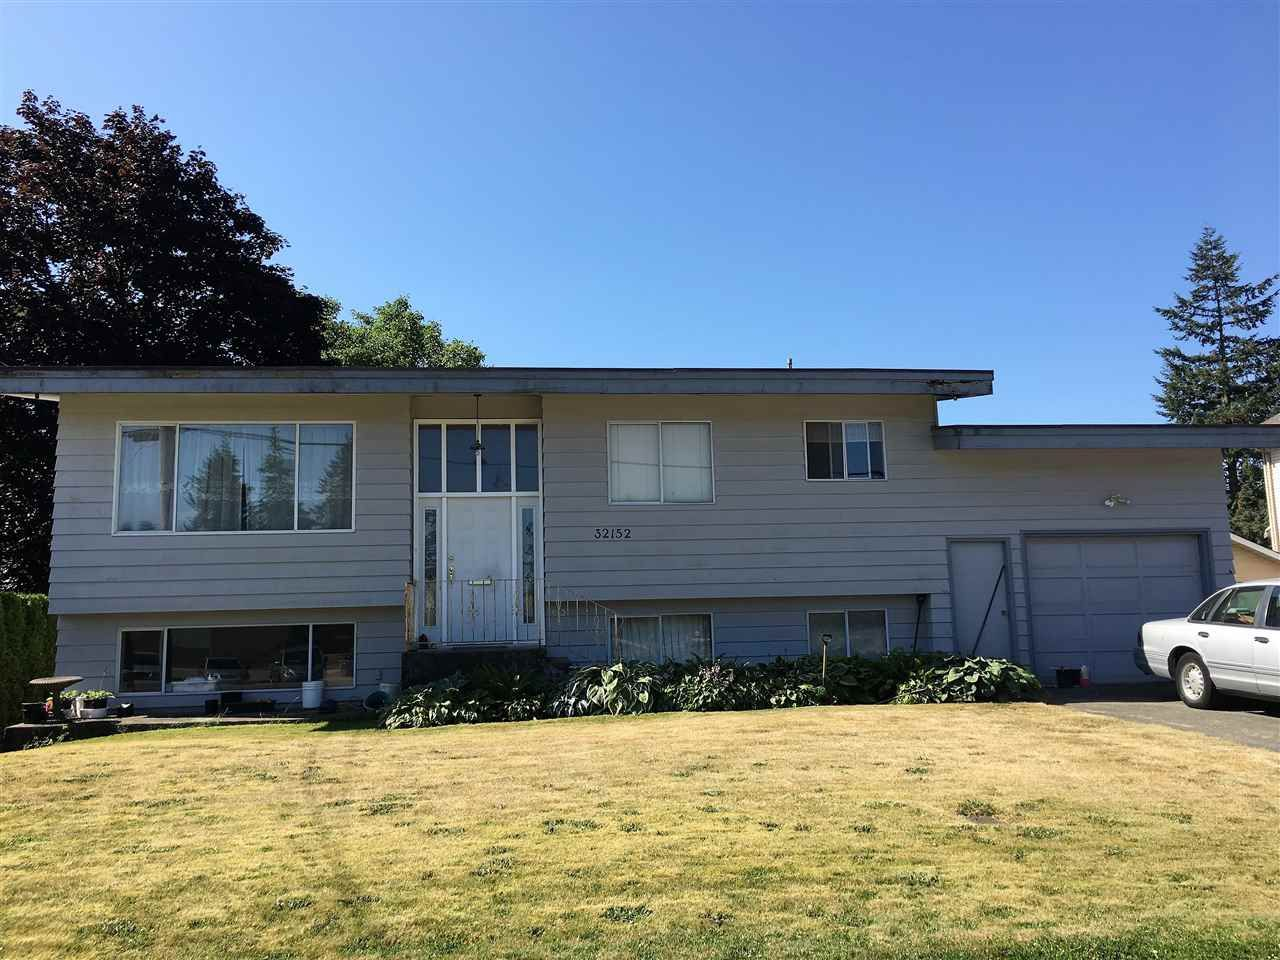 Main Photo: 32152 DORMICK Avenue in Abbotsford: Abbotsford West House for sale : MLS®# R2188128